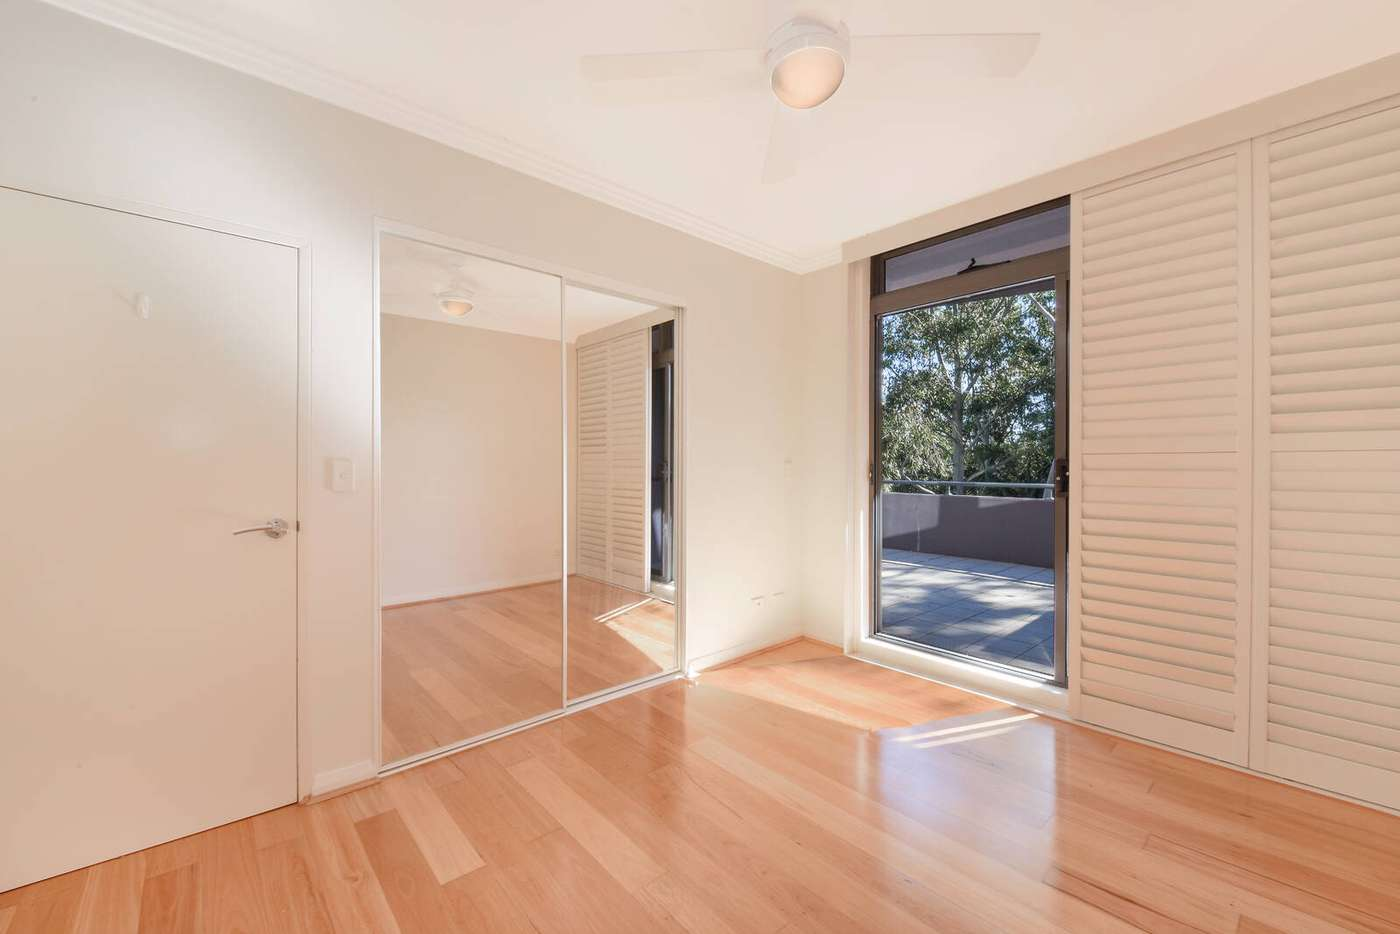 Fifth view of Homely apartment listing, 32/24-28 College Crescent, Hornsby NSW 2077